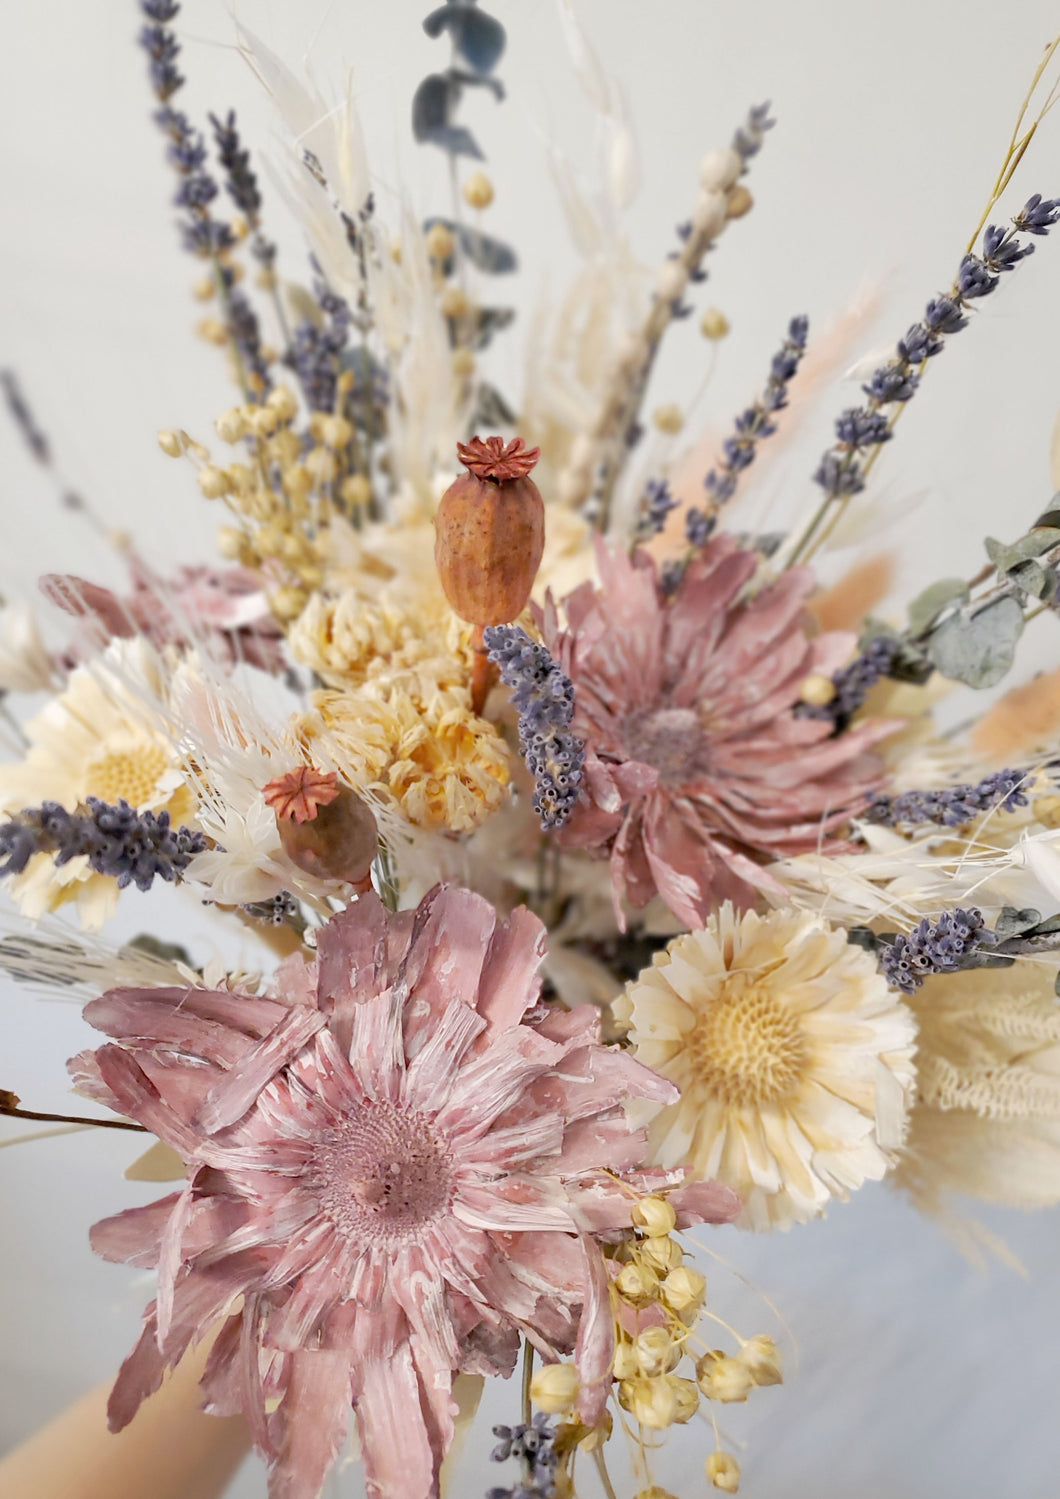 Mixed dried flower bouquet